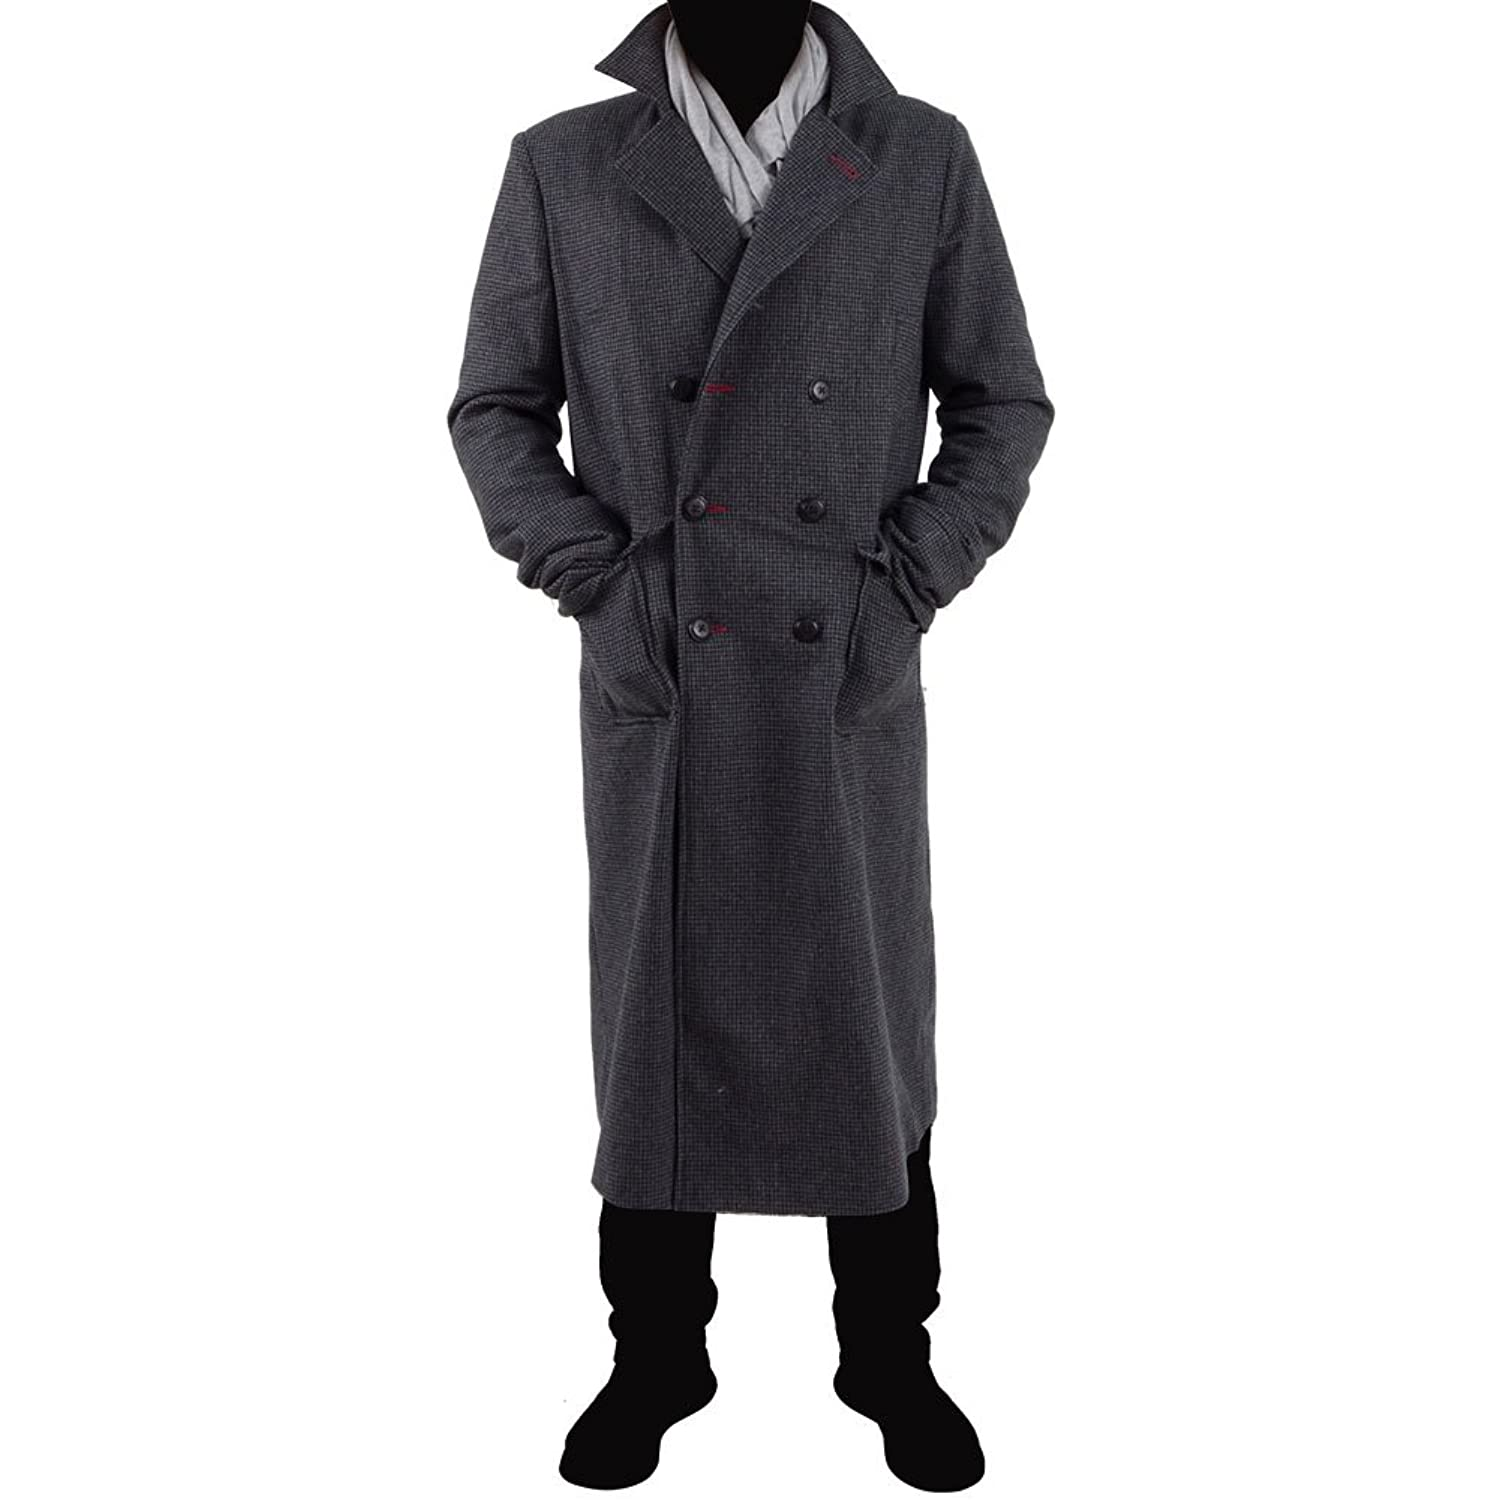 Men's Vintage Style Coats and Jackets Mens Plaids And Tweeds Long Trench Coat Halloween Cosplay Costume Overcoat $100.00 AT vintagedancer.com